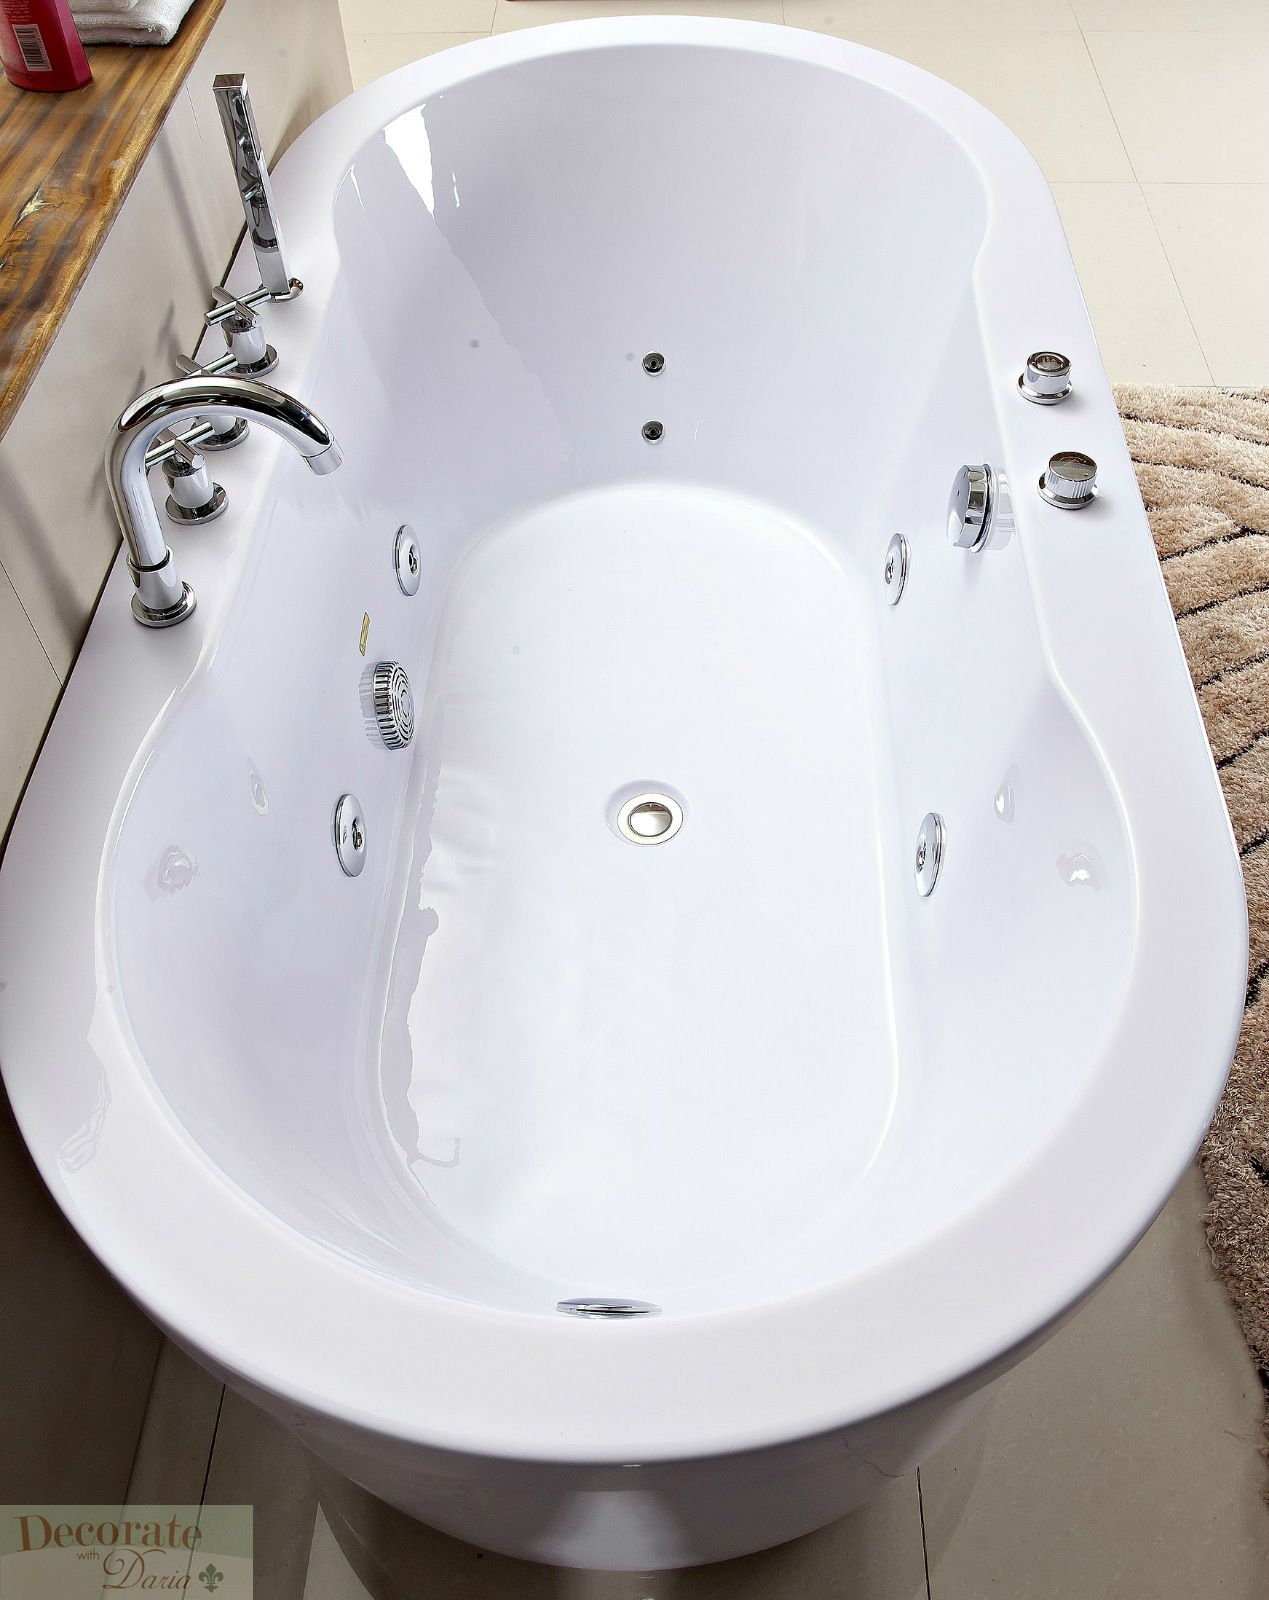 best-freestanding-jetted-tub-bathtub-freestanding-whirlpool-jetted ...